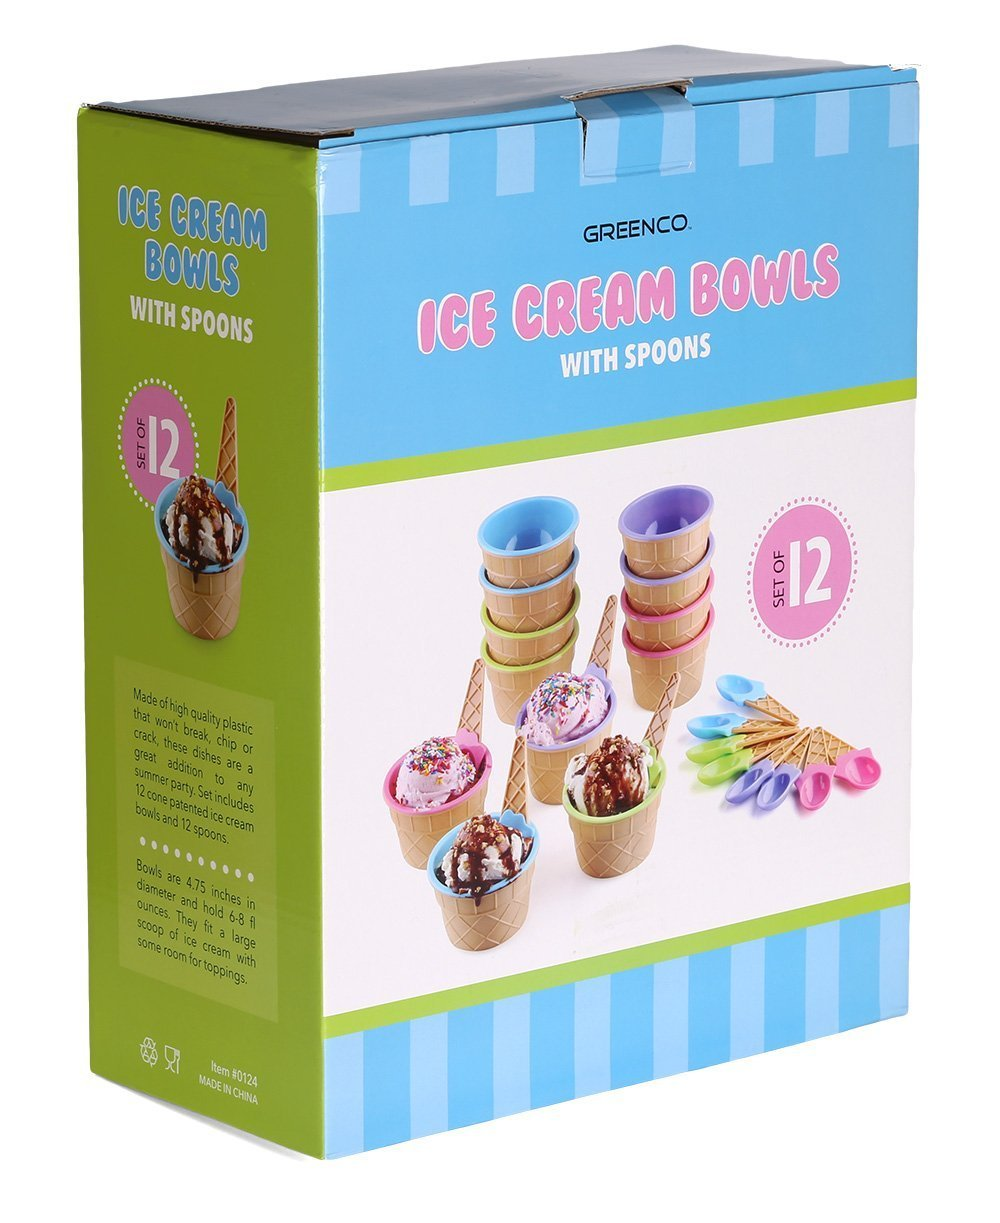 Greenco Vibrant Colors Ice Cream Dessert Bowls and Spoons (Set of 12) by Greenco (Image #2)